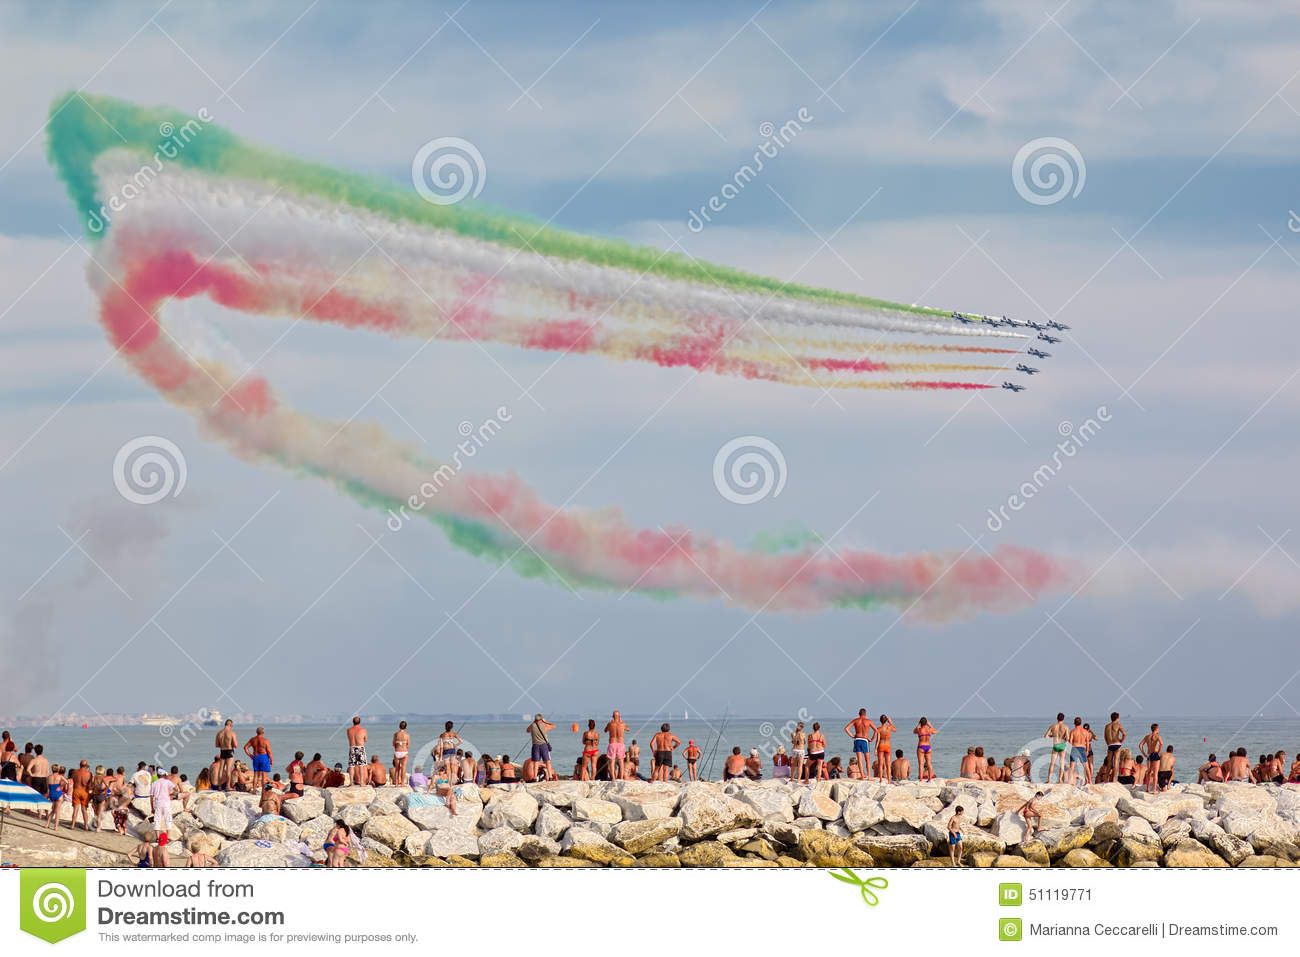 Exhibition of Italian aerobatic team Frecce Tricolori in Versilia Marina di Massa